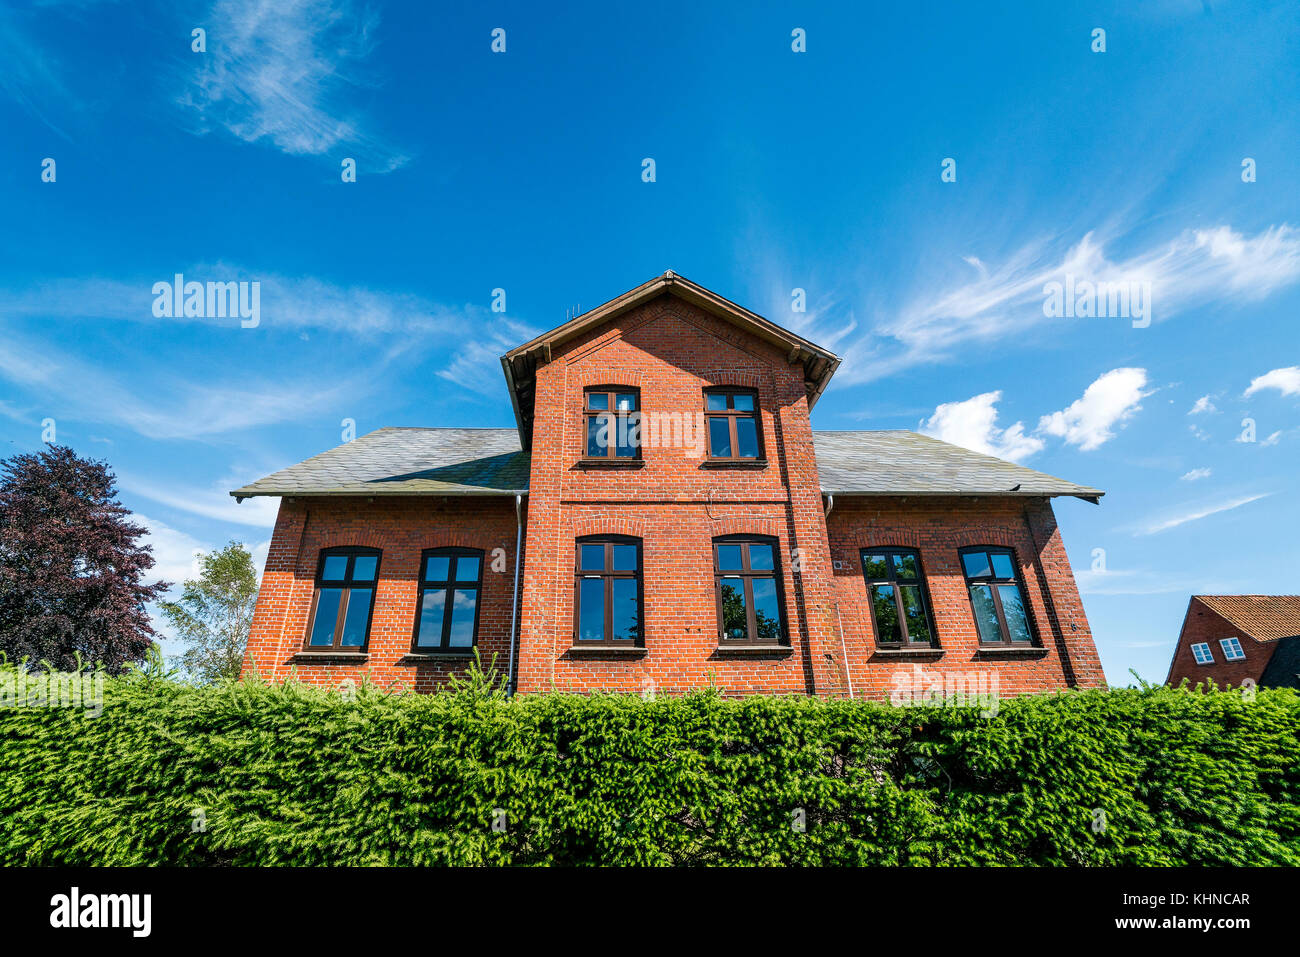 Large brick house in red color behind a green hedge in the summer with blue sky - Stock Image